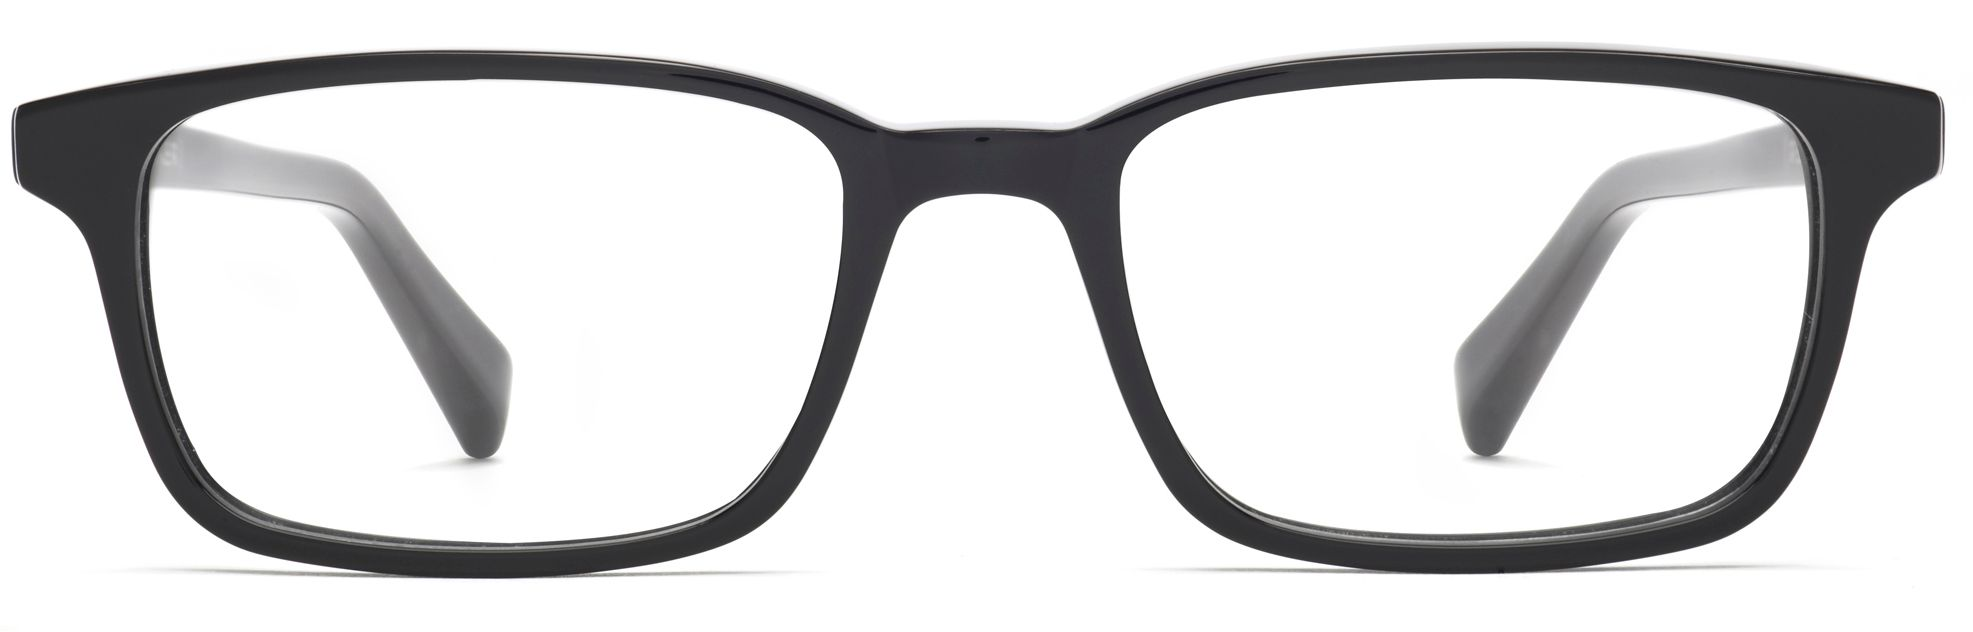 crane eyeglasses in jet black for men warby parker